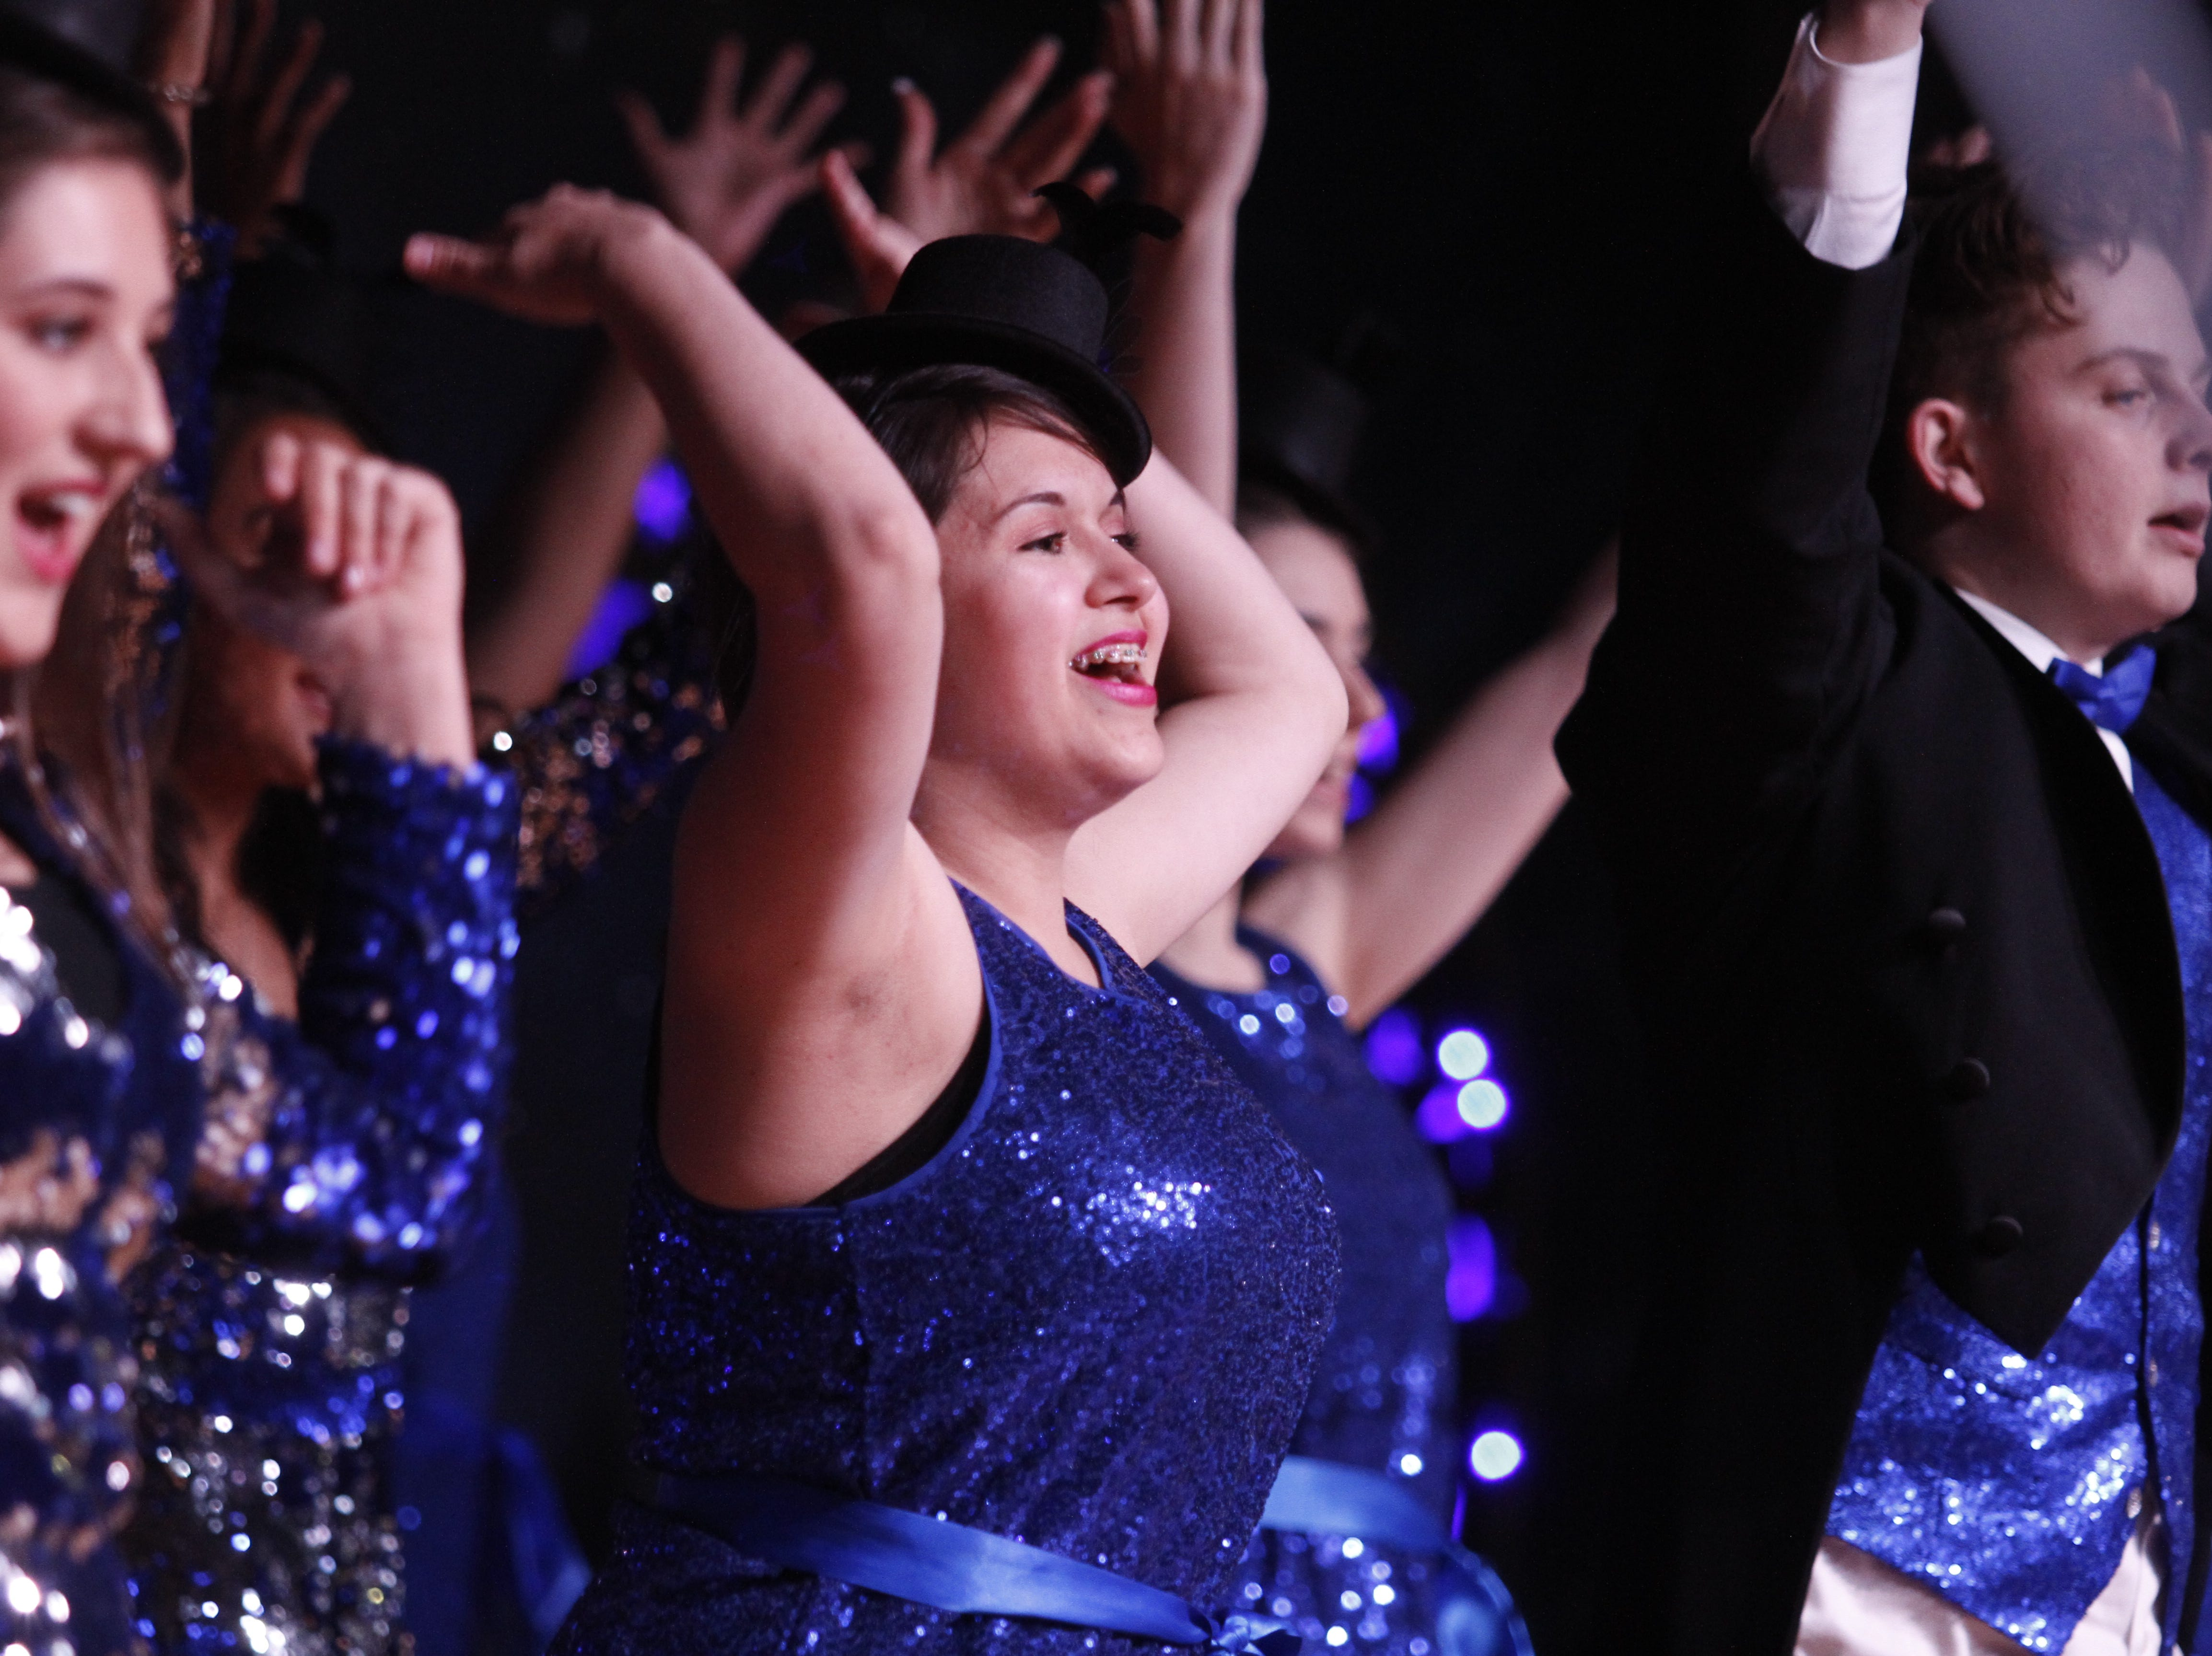 The CA Show Choir performs at Clarksville Academy's Steak Dinner on Saturday, April 13, 2019.day, April 13, 2019.